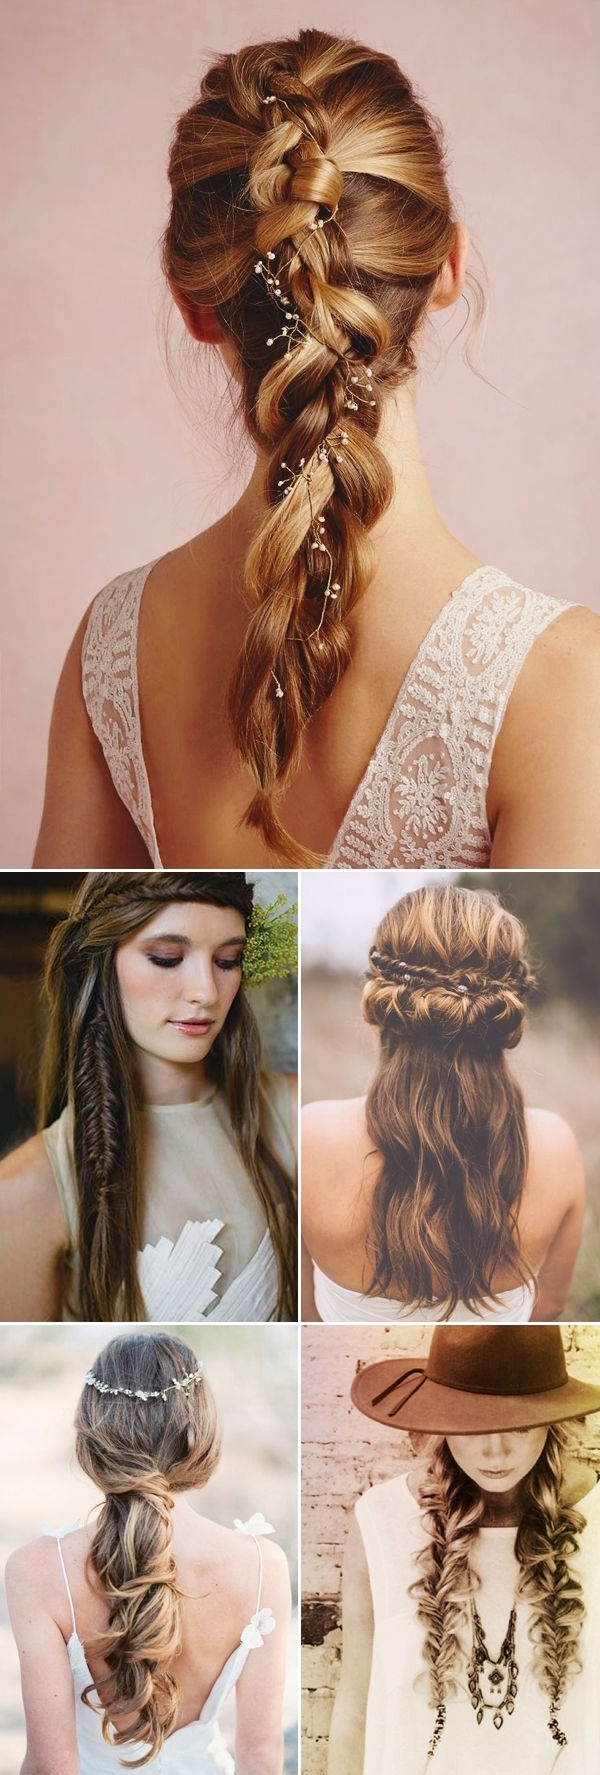 30 Boho Chic Hairstyles For 2016 – Pretty Designs Regarding Trendy Wedding Hairstyles For Long Boho Hair (View 3 of 15)